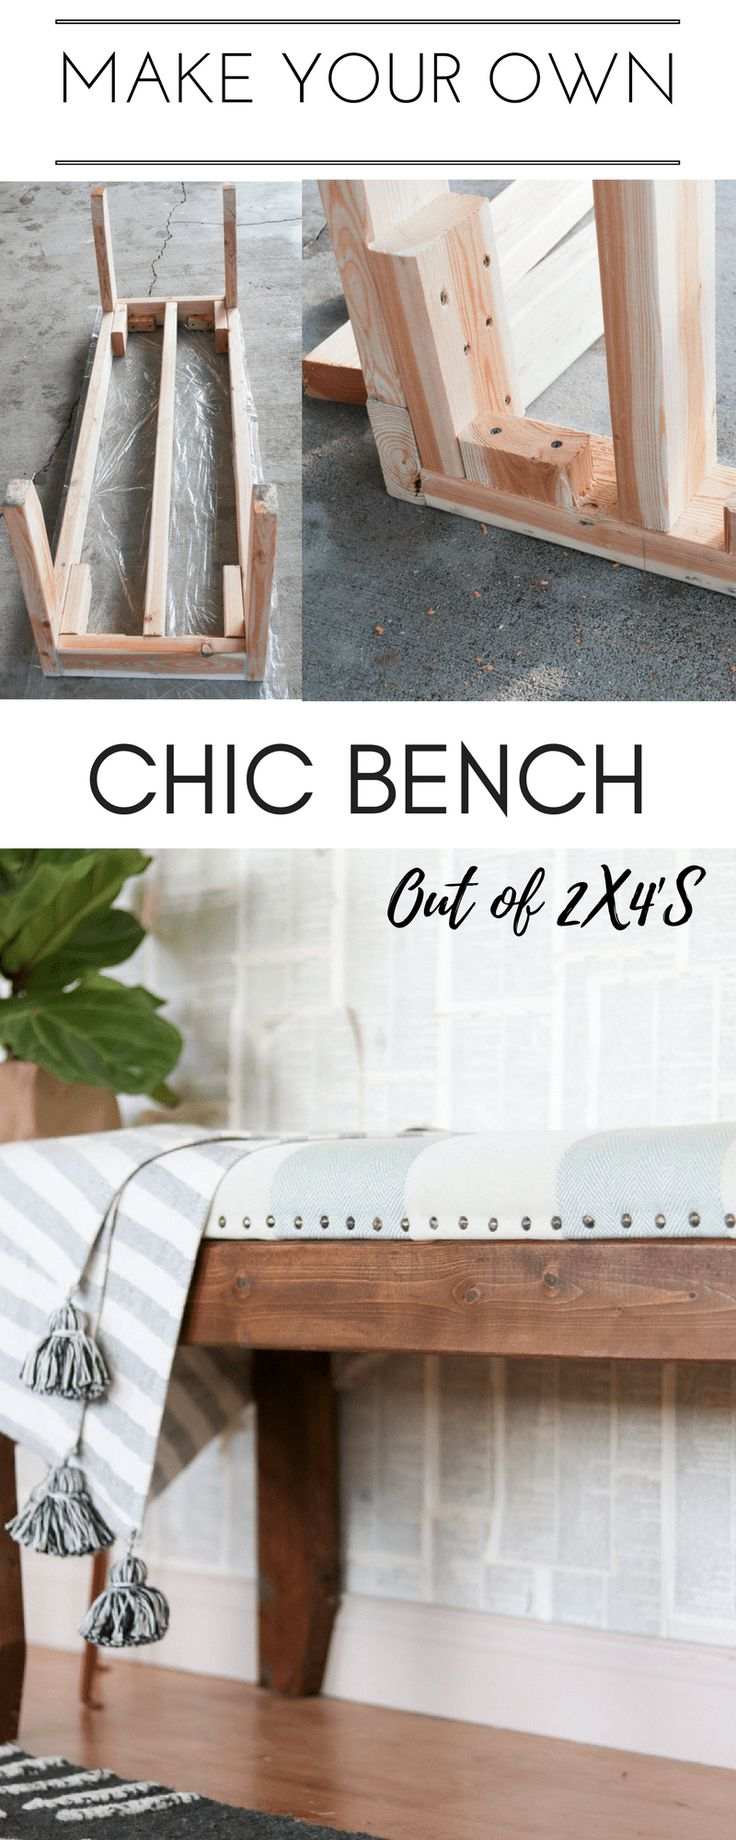 Awesome Bench diy